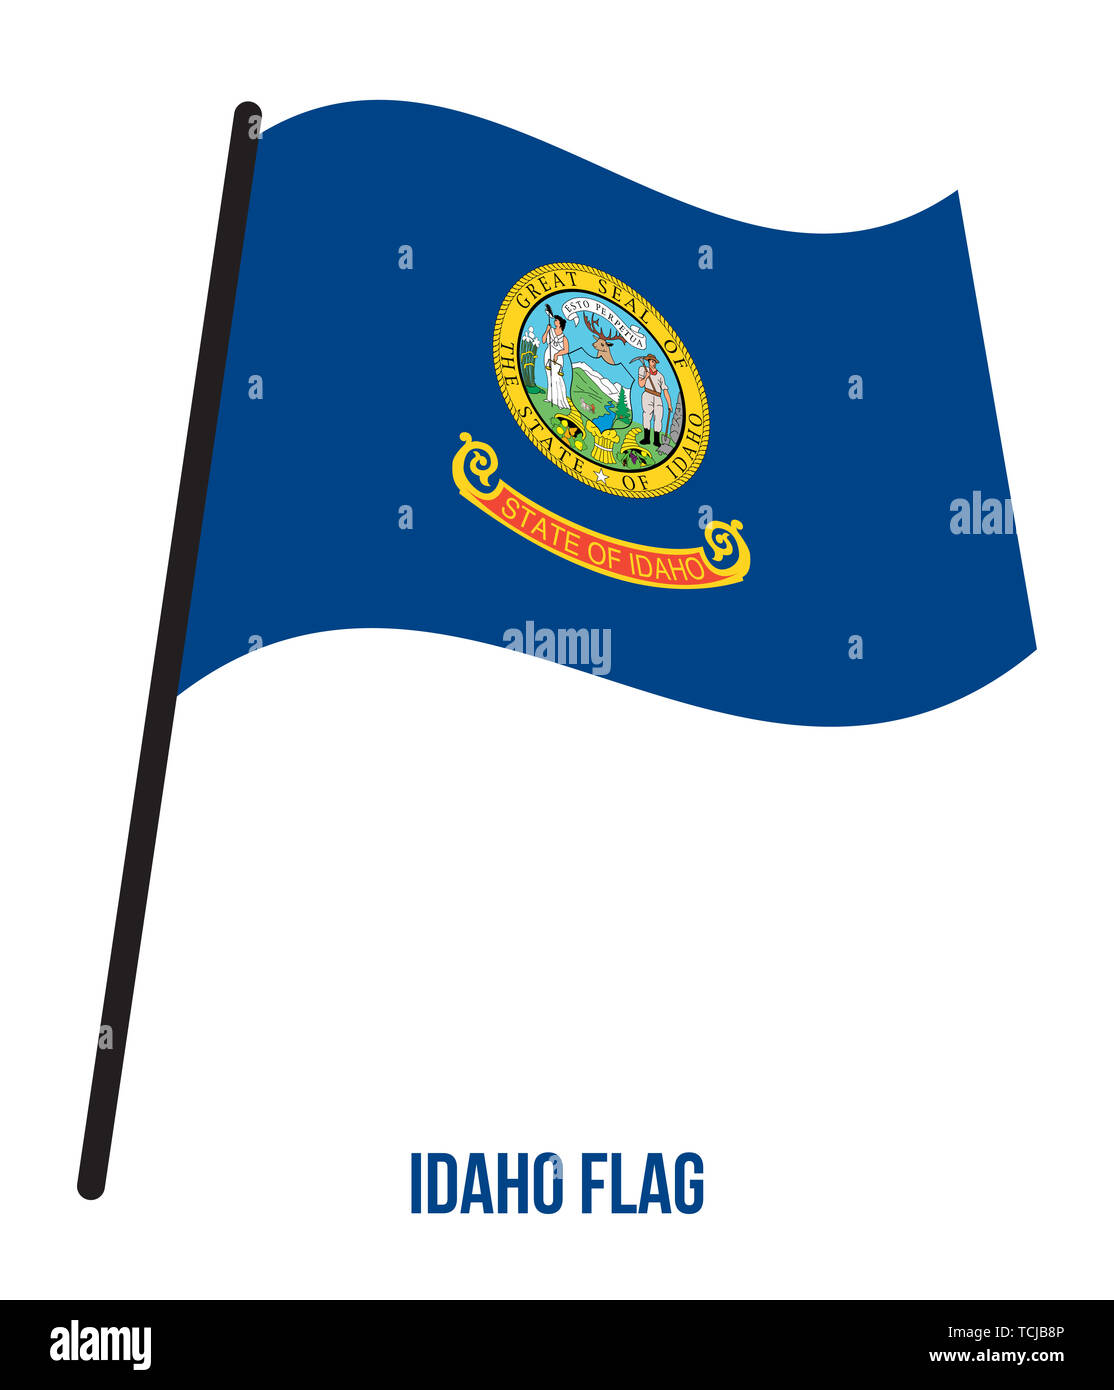 Idaho (U.S. State) Flag Waving Vector Illustration on White Background. Flag of the United States of America. - Stock Image